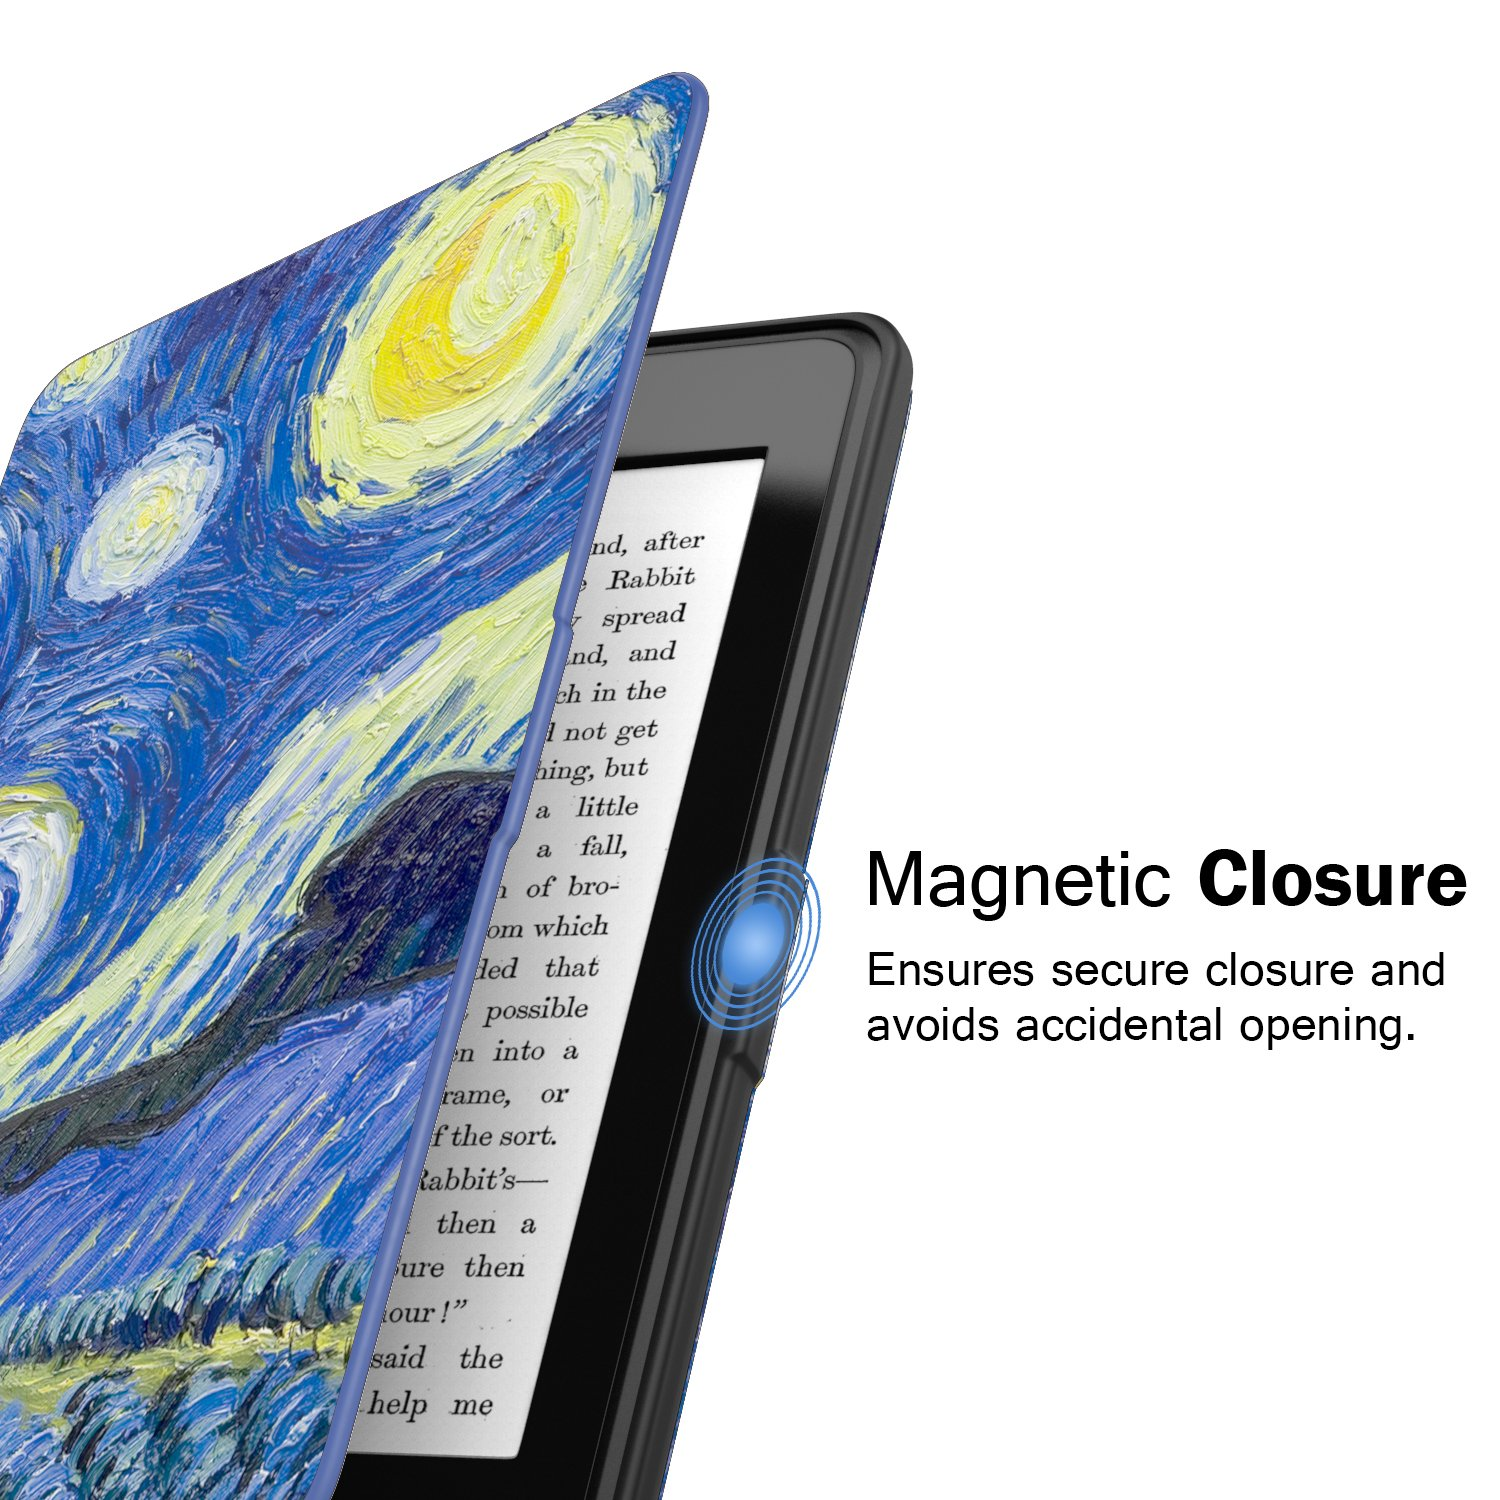 MoKo Case for Kindle Paperwhite, Premium Thinnest and Lightest PU Leather Cover with Auto Wake/Sleep for Amazon All-New Kindle Paperwhite (Fits 2012, 2013, 2015 and 2016 Versions), Starry Night by MoKo (Image #8)